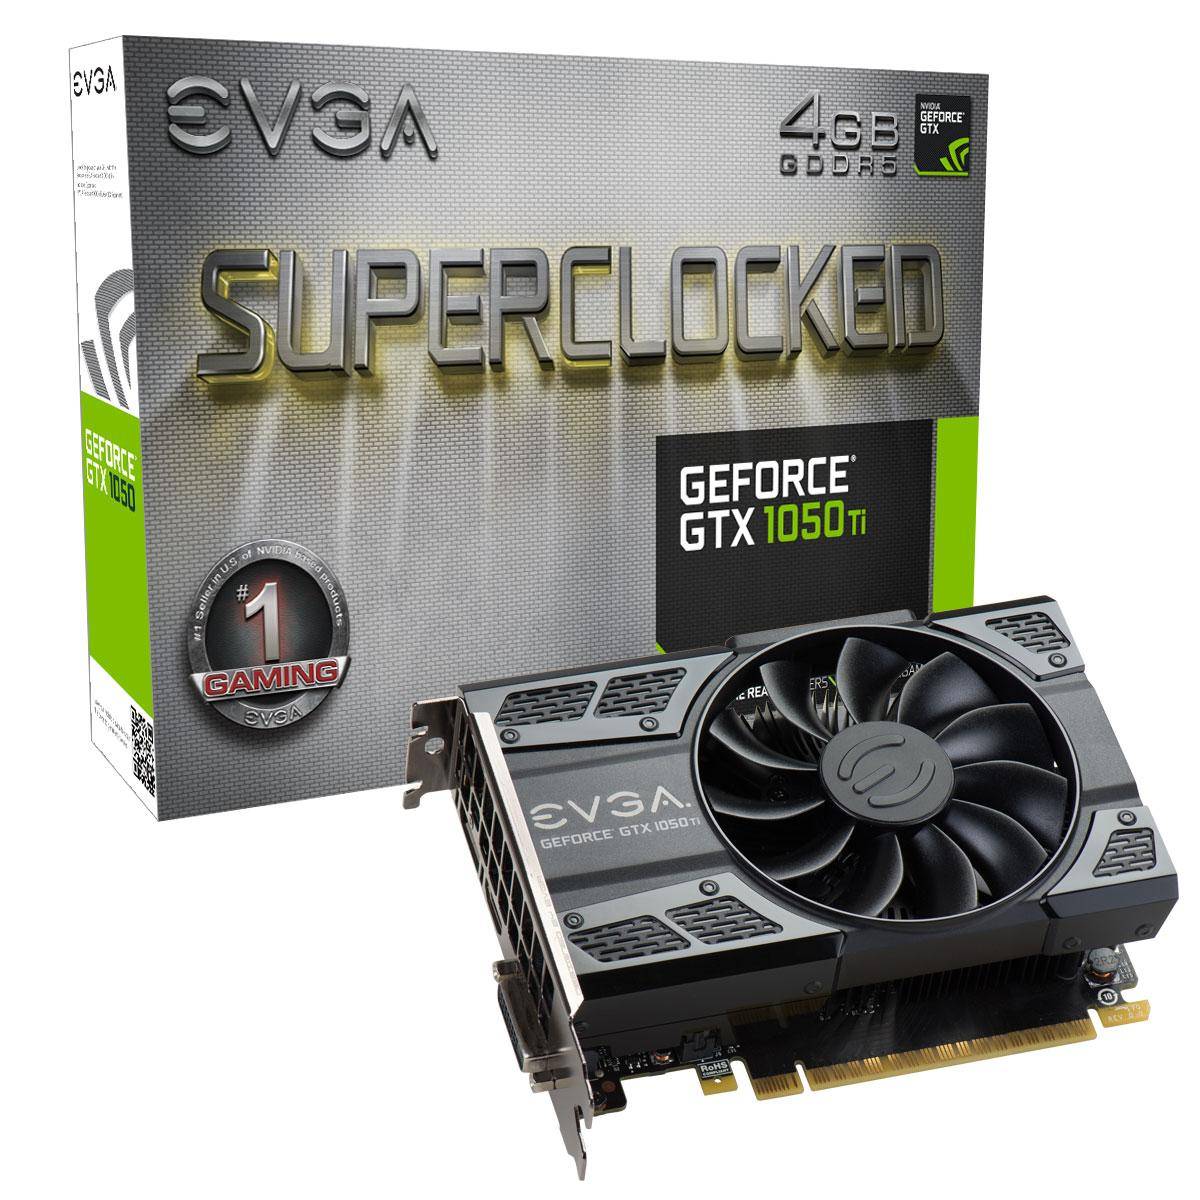 Видео карта  EVGA GeForce GTX 1050 Ti SC GAMING 04G-P4-6253-KR, 4GB, GDDR5, 128 bit, DVI-D, DisplayPort, HDMI